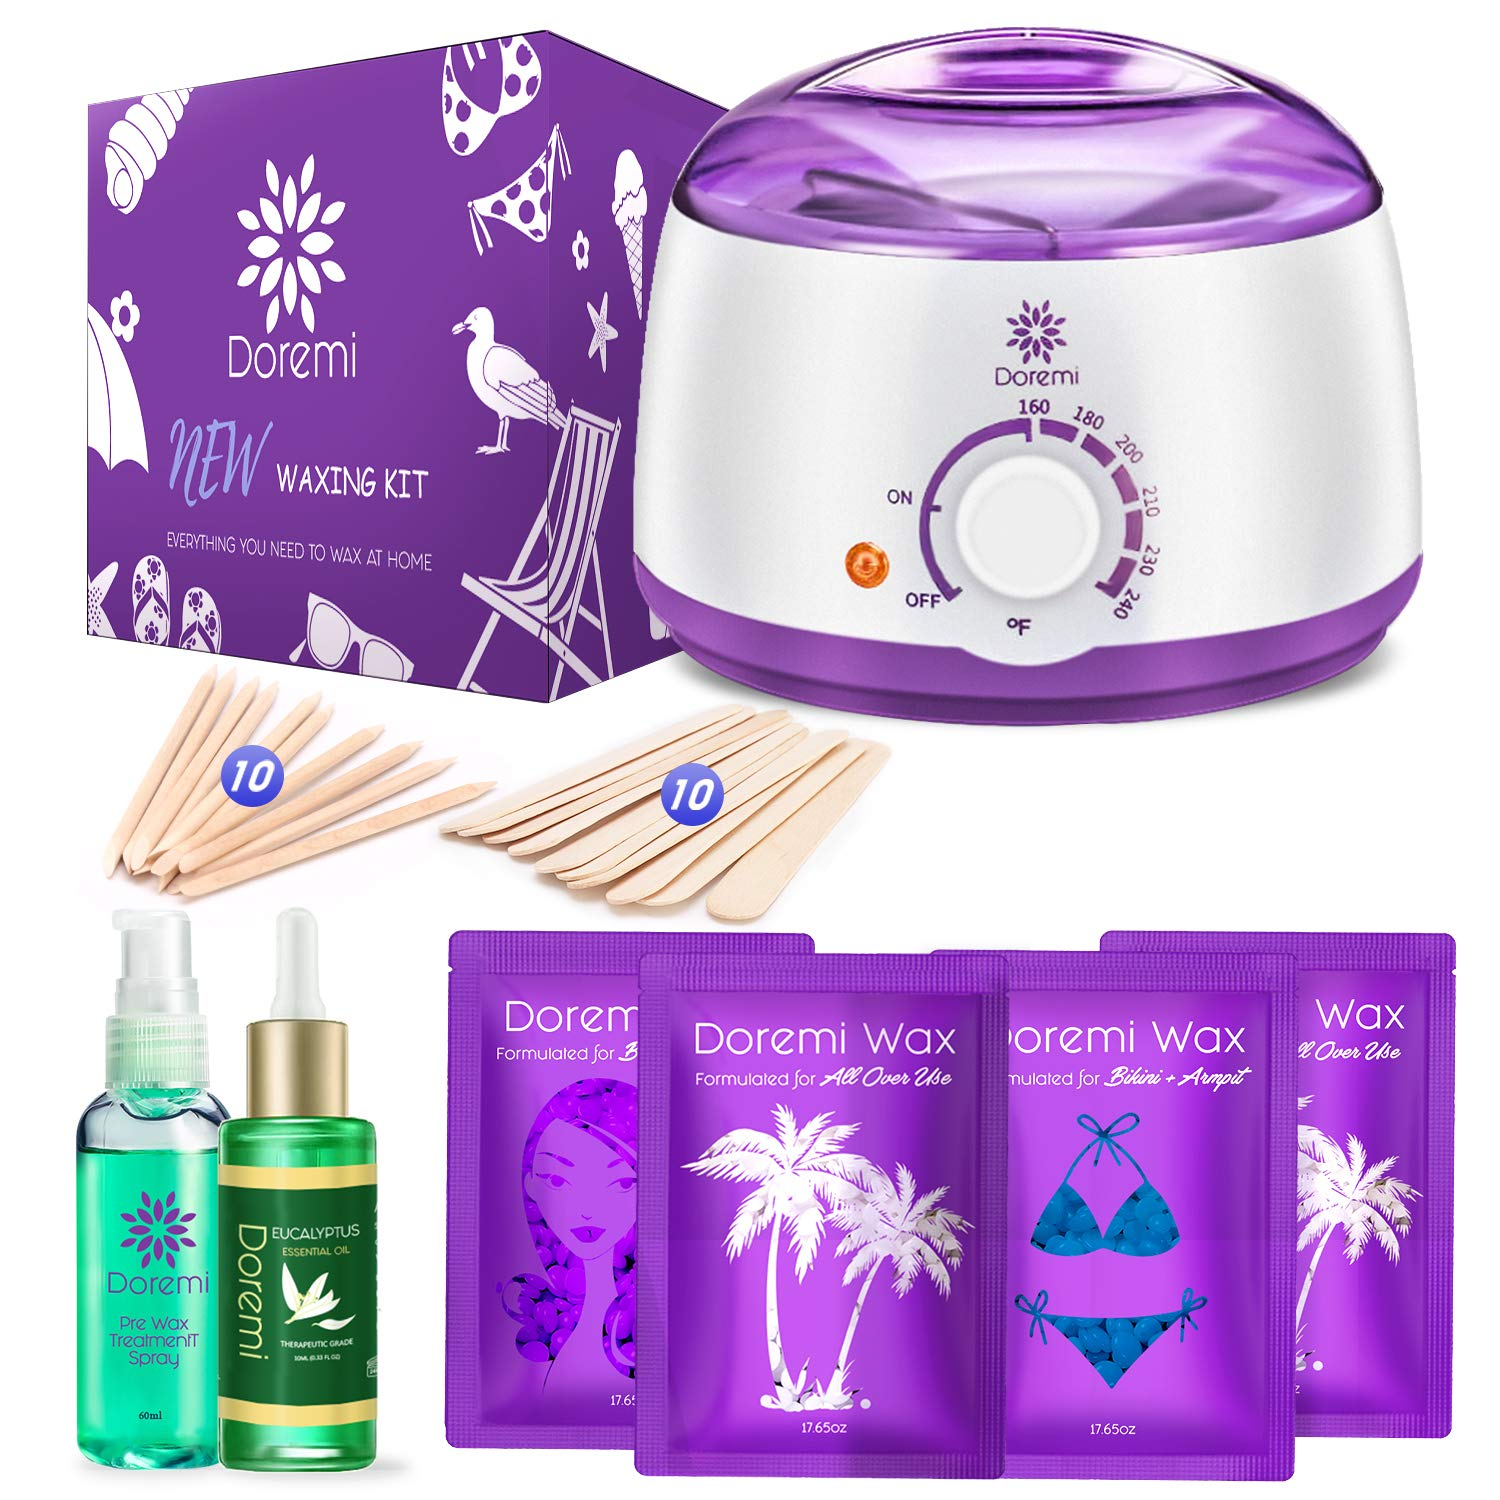 Doremi New Waxing Kit, Painless Hair Removal Home Kit,Multiple Formulas Target Different Type of Bikini, Facial, Armpit,Eyebrows, with Hot Wax Warmer, 4 Hard Wax Beans and 20 Wax Applicator Sticks by Doremi